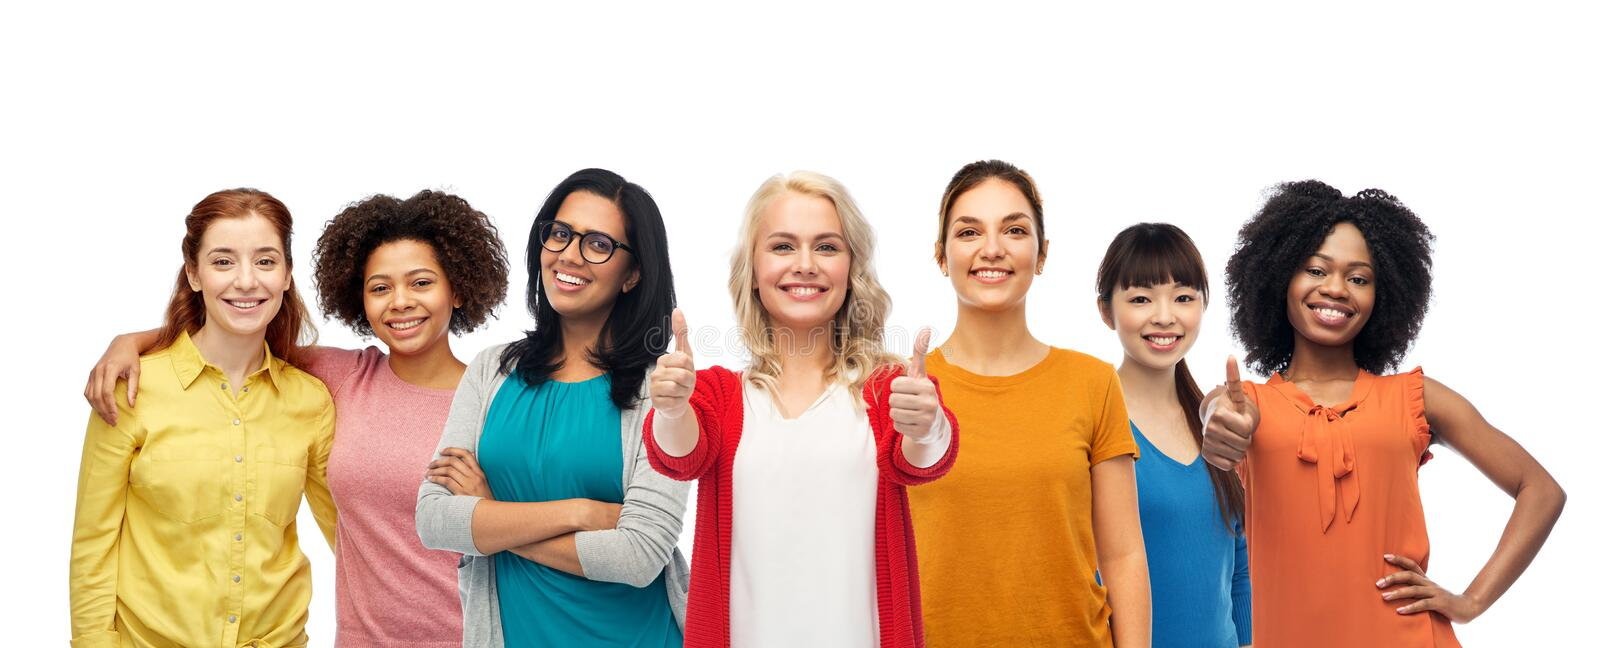 International group of women showing thumbs up. Diversity, feminism and international people concept - group of happy smiling different women over white showing royalty free stock images